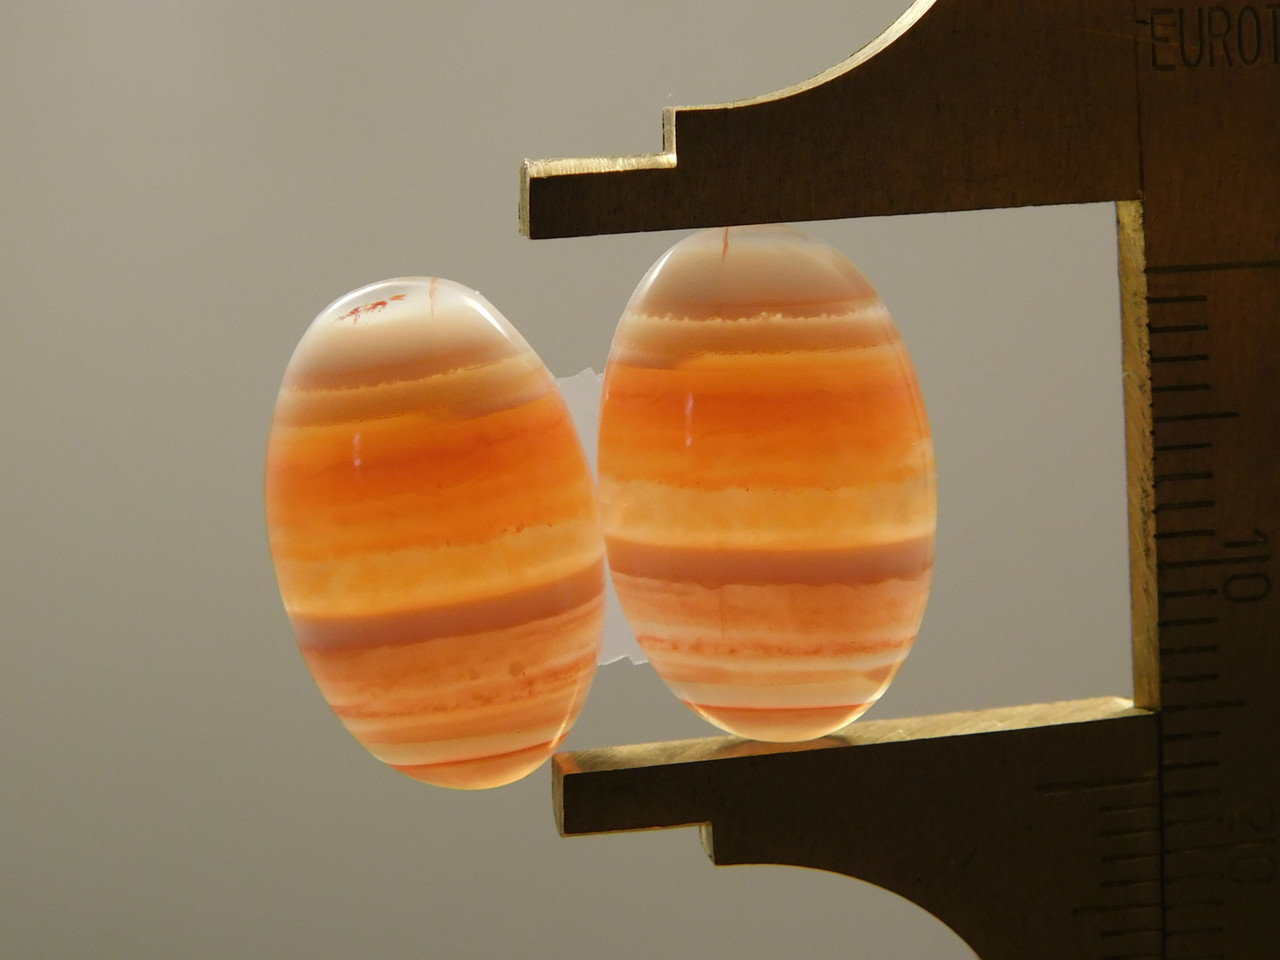 Cabochons Oval Banded Orange and White Carnelian Agate Matched Pair #8